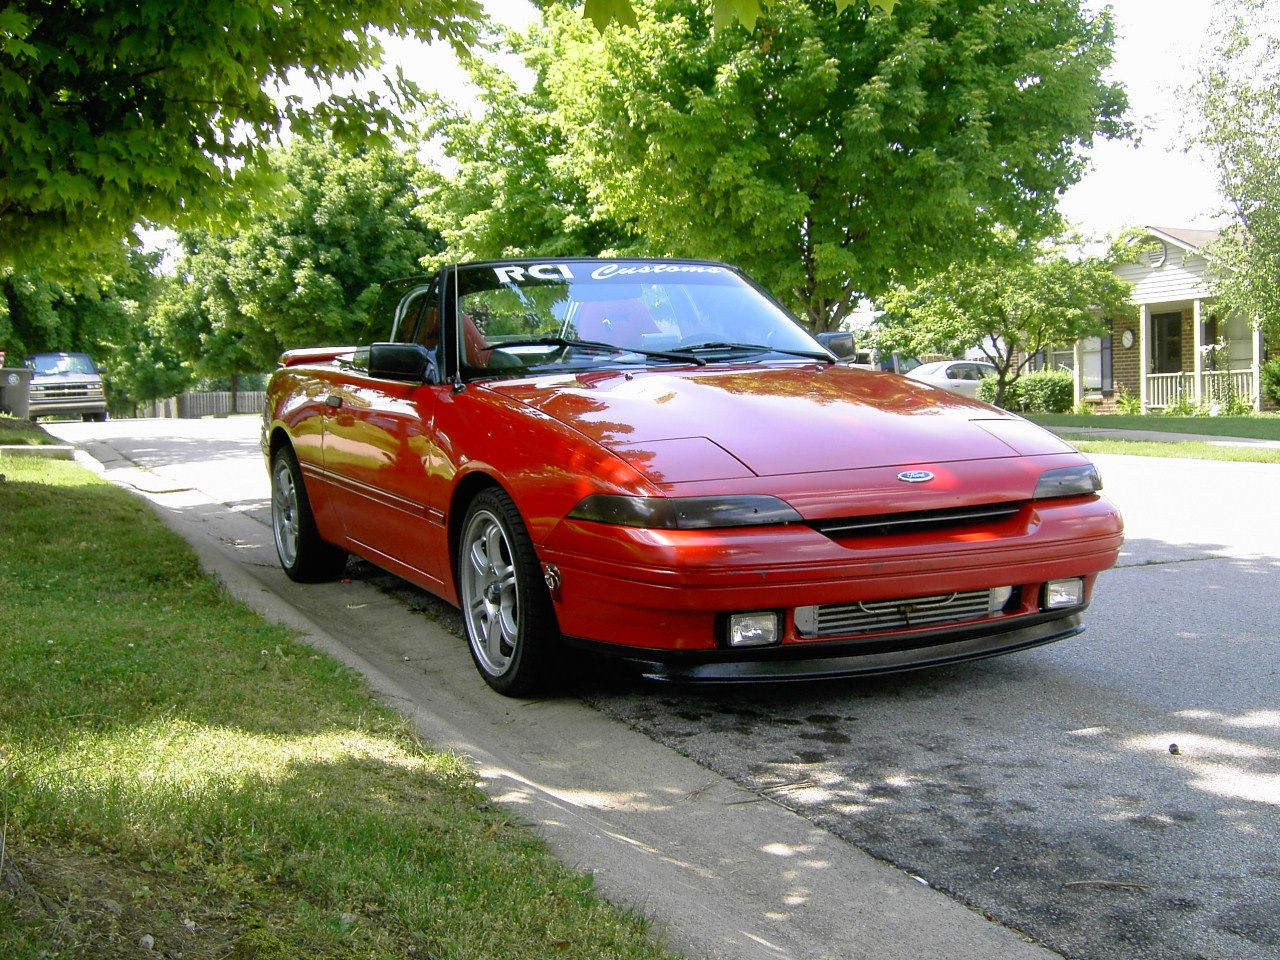 5 1992 mercury capri xr2 i wish it would ve looked this good it was easily the least masculine car i ve ever owned but it was a decently quick